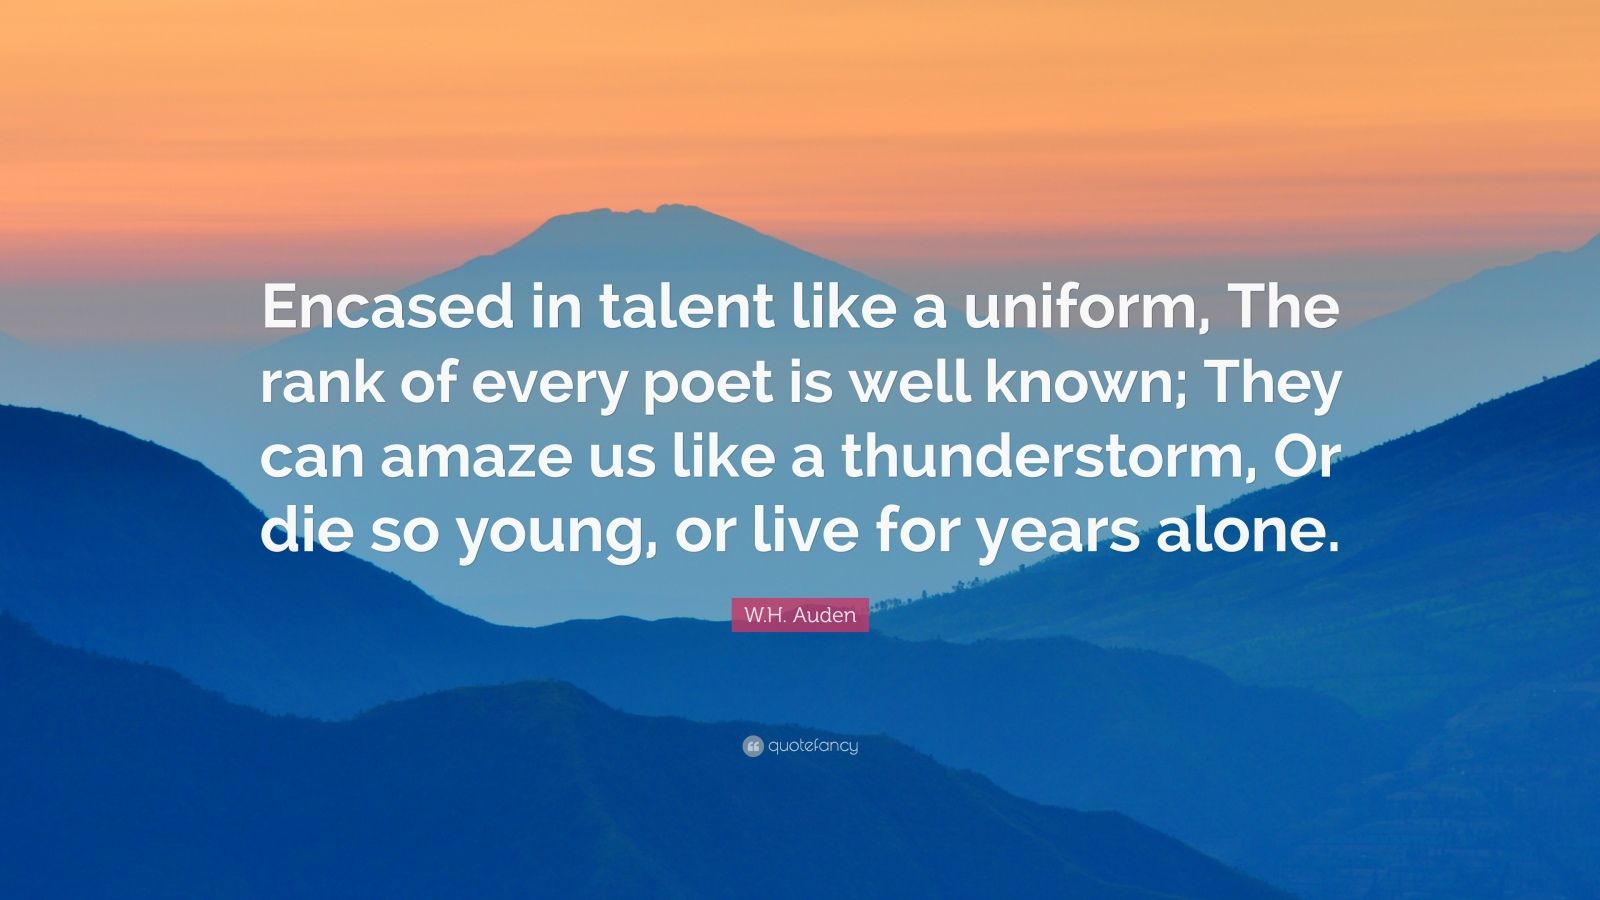 """W.H. Auden Quote: """"Encased in talent like a uniform, The rank of every poet is well known; They can amaze us like a thunderstorm, Or die so young, or live for years alone."""""""